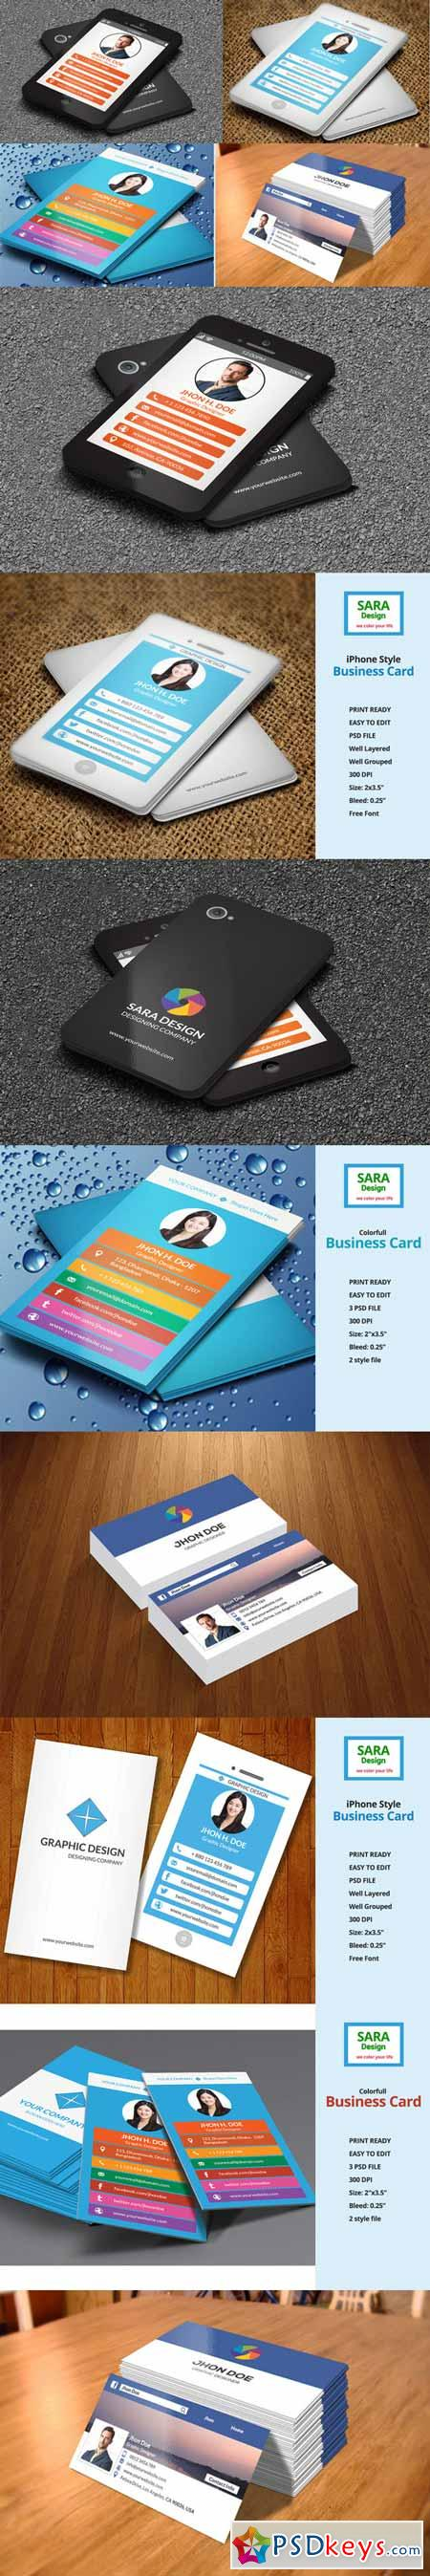 4 Business Card Bundle 611334 » Free Download Photoshop Vector Stock ...